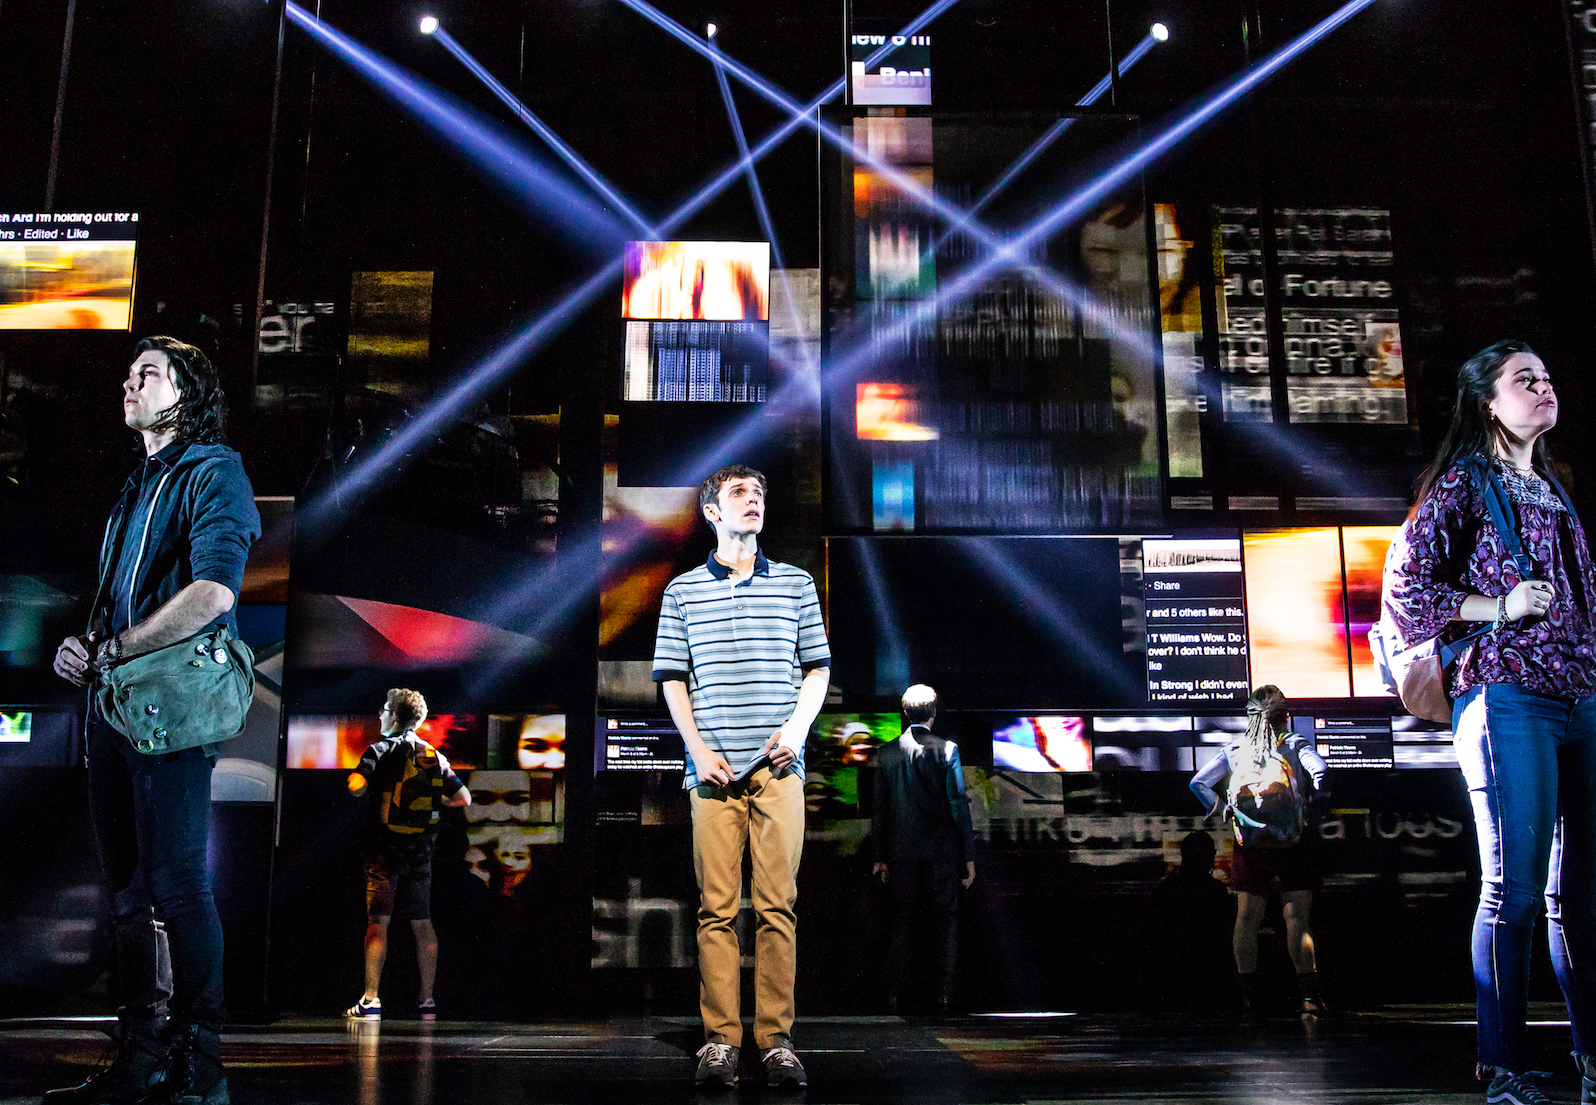 A $25 ticket lottery for Dear Evan Hansen at the Curran is now open!